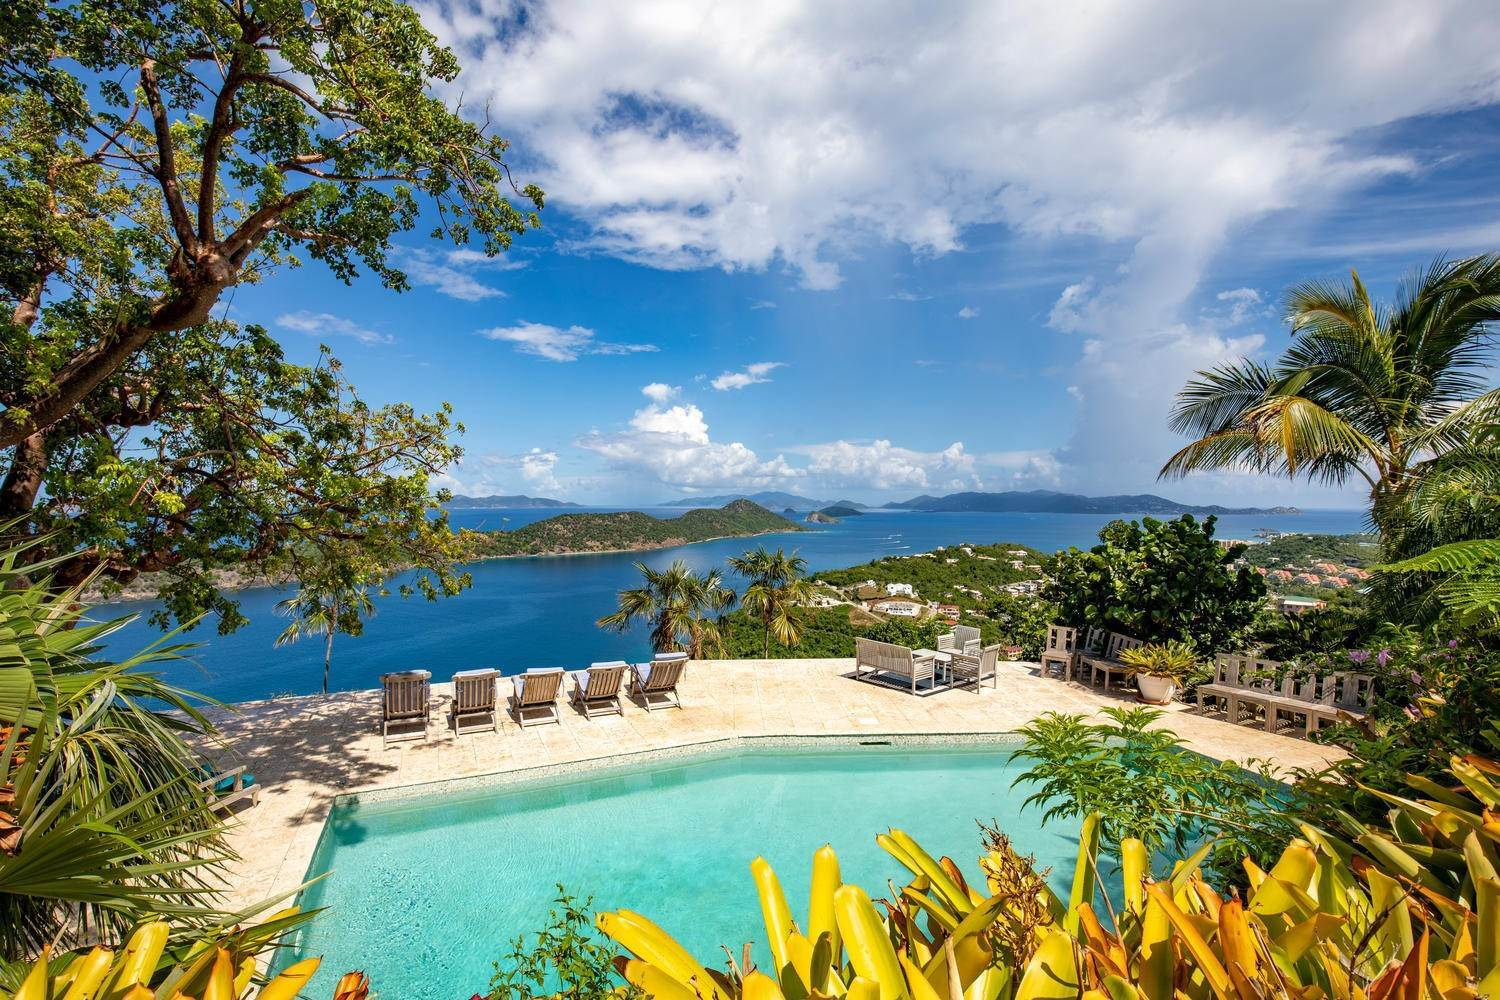 Multi-Family Homes for Sale at 3A,3A-I,3I Tabor & Harmony EE St Thomas, Virgin Islands 00802 United States Virgin Islands